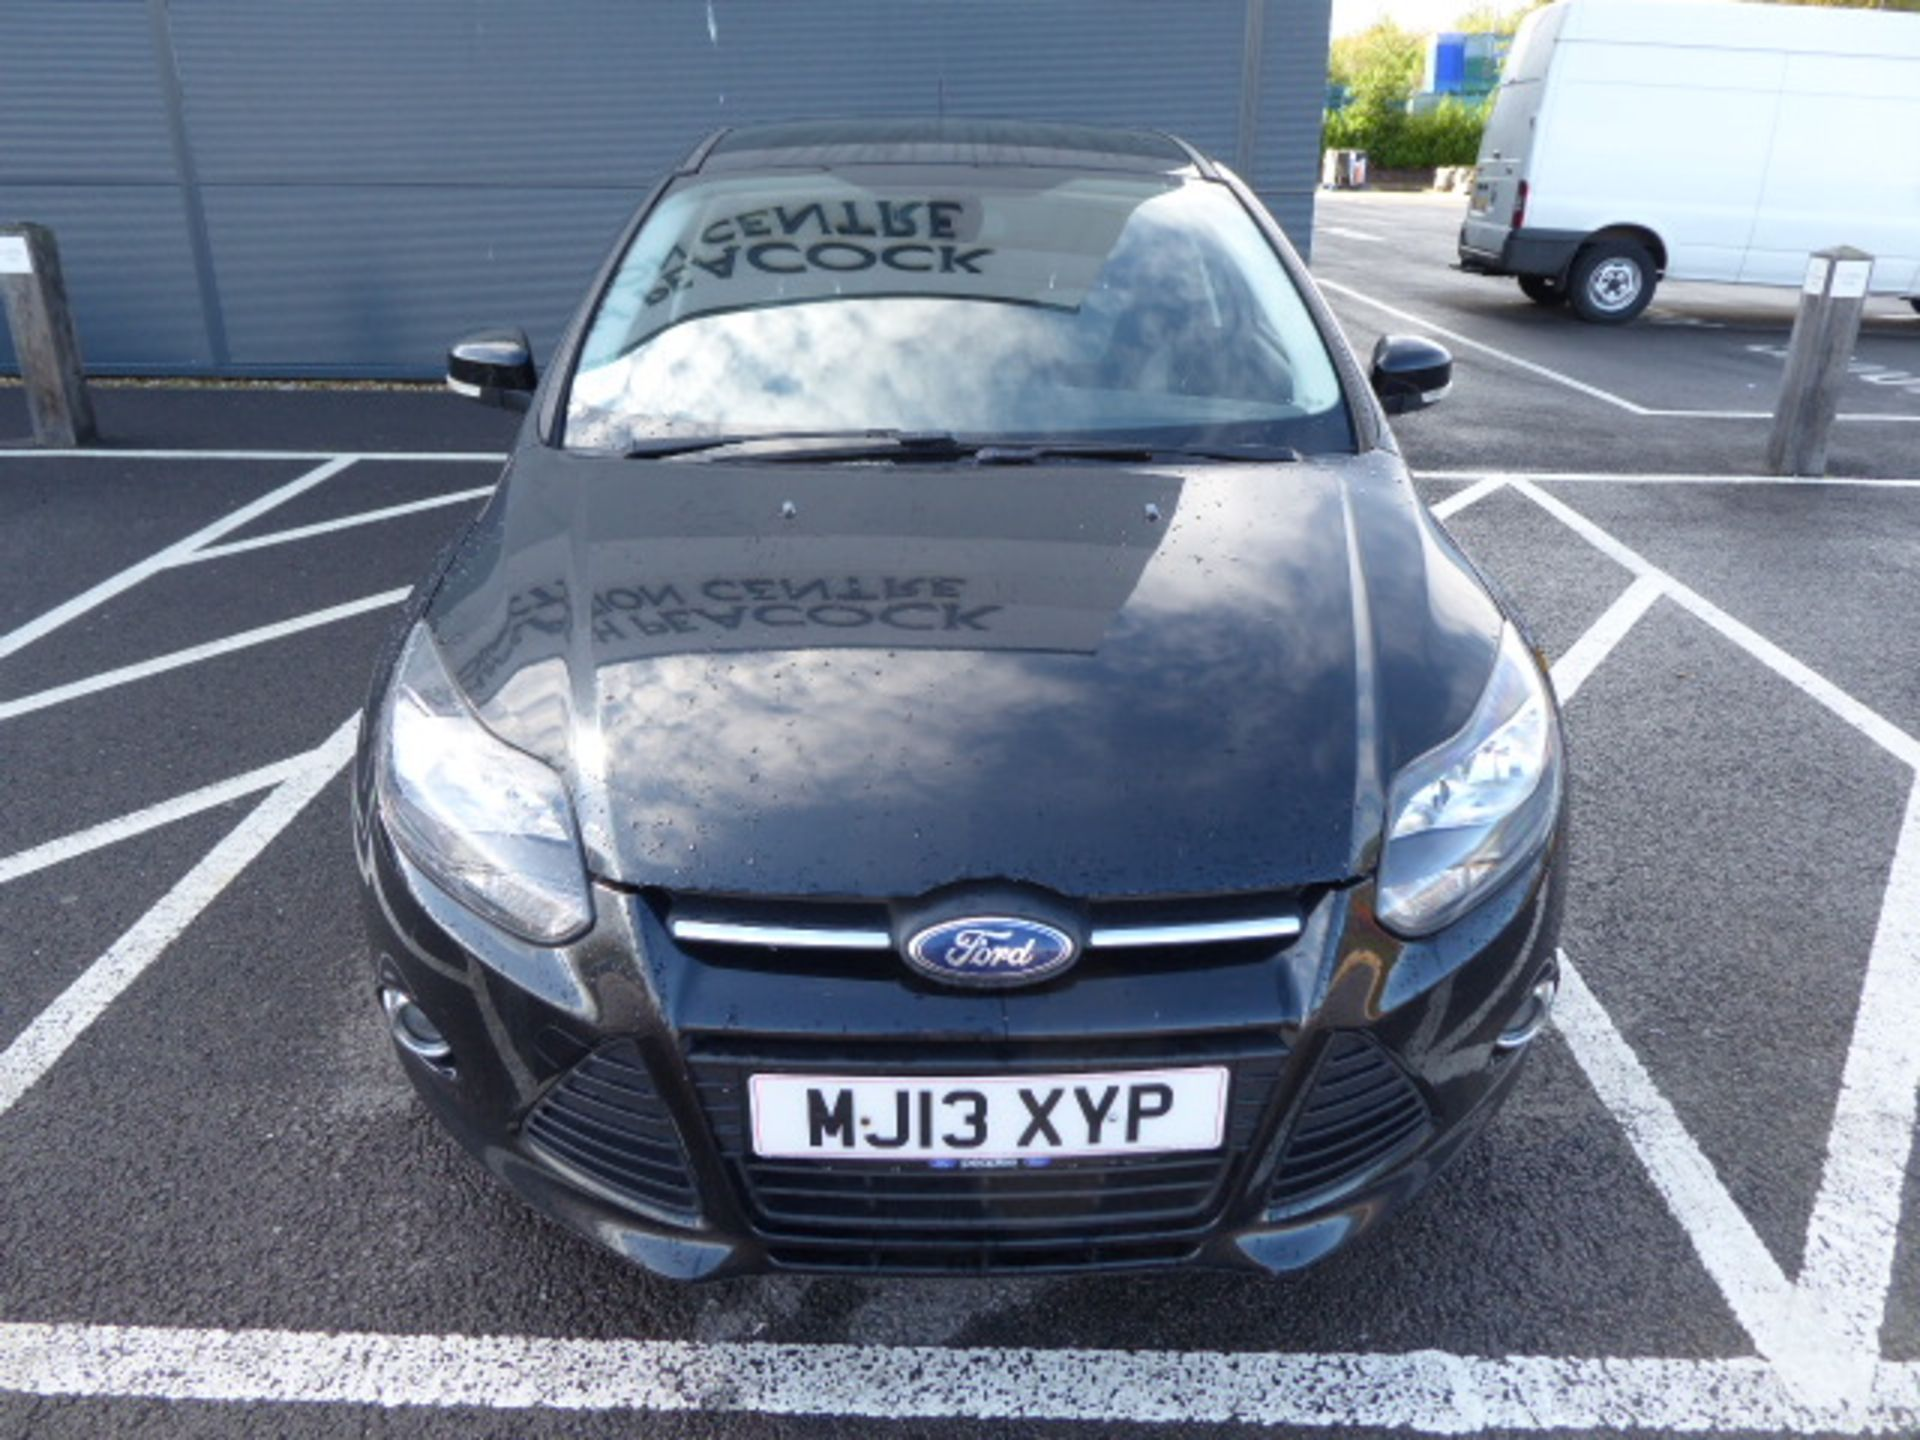 Lot 4005 - MJ13 XYP (2013) Ford Focus Zetec Turbo, 998cc petrol 5 door hatchback in black MOT: 6/10/21